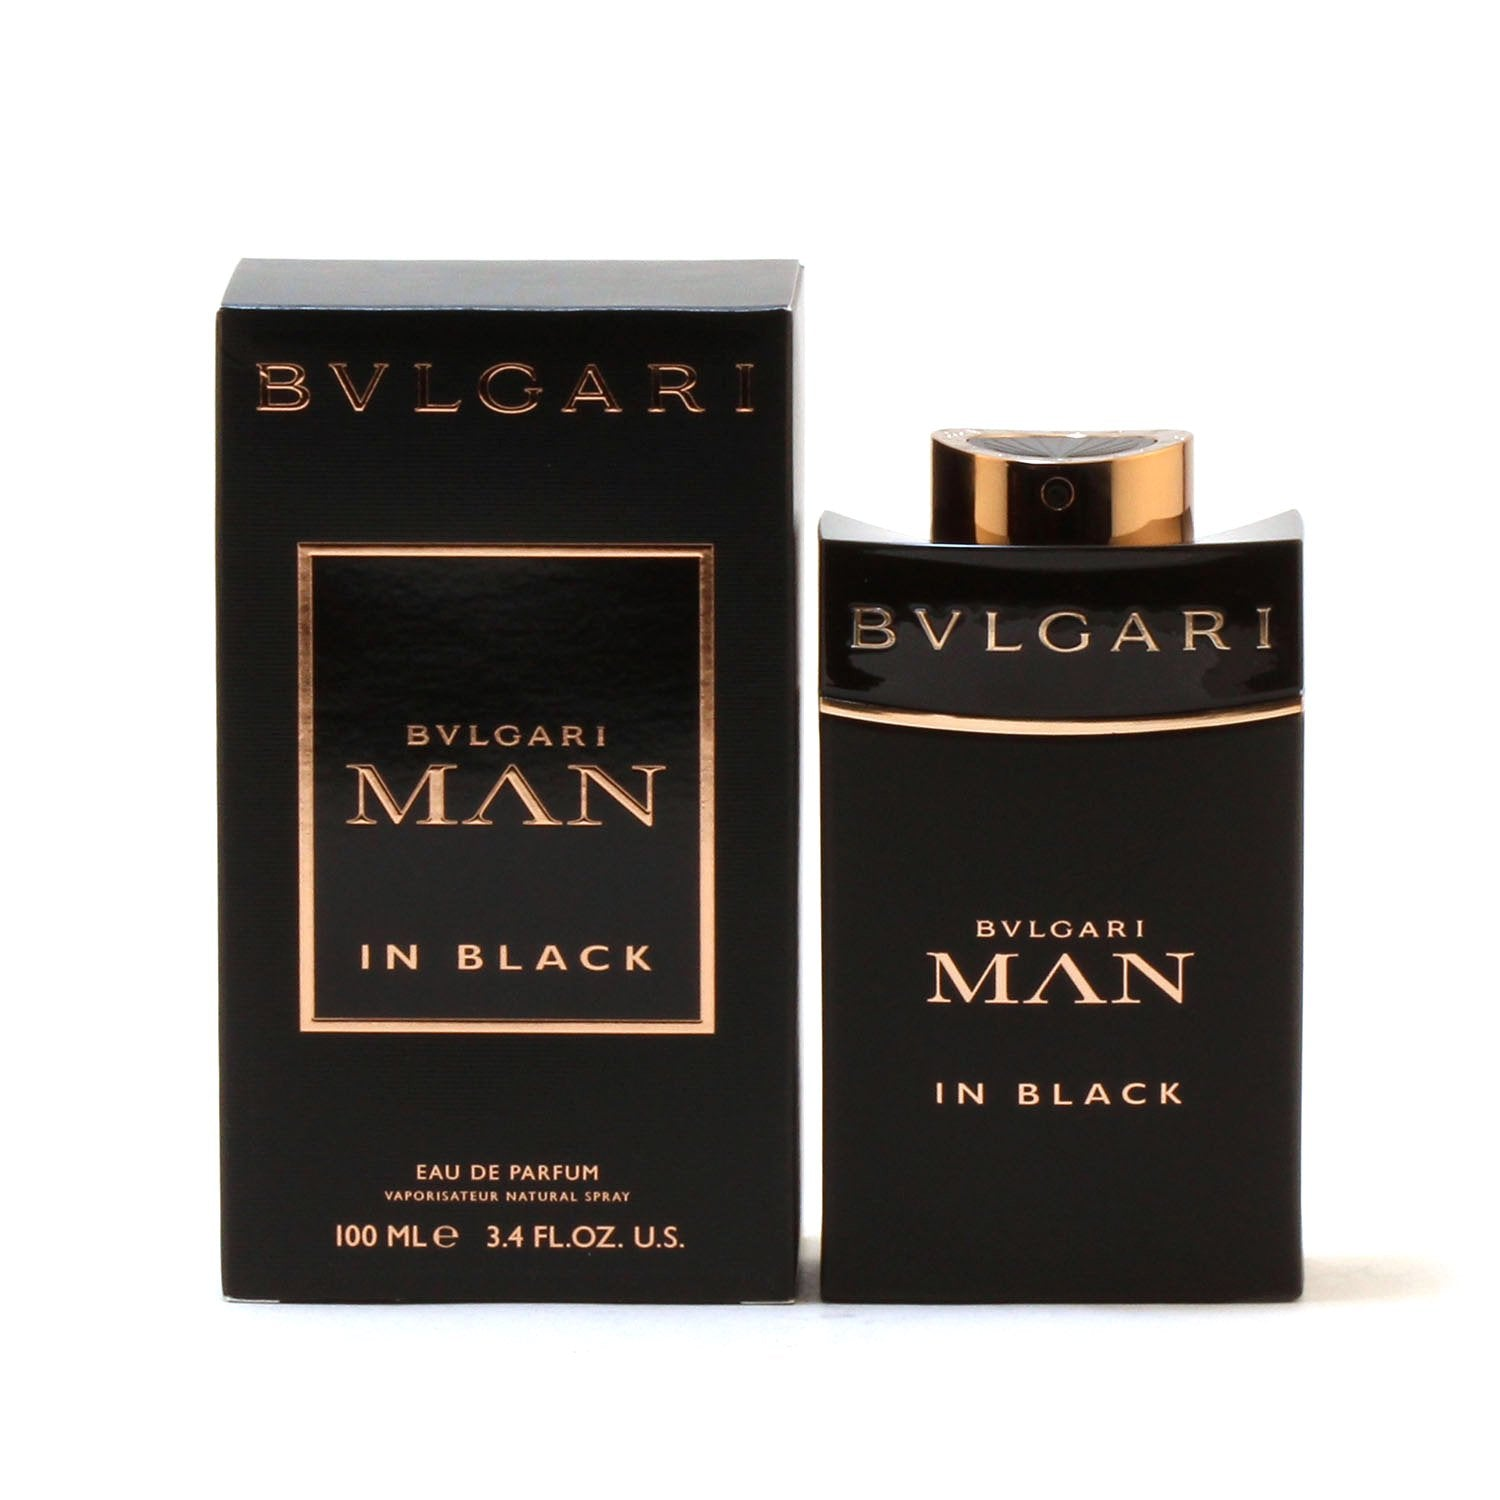 Cologne - BVLGARI MAN IN BLACK - EAU DE PARFUM SPRAY